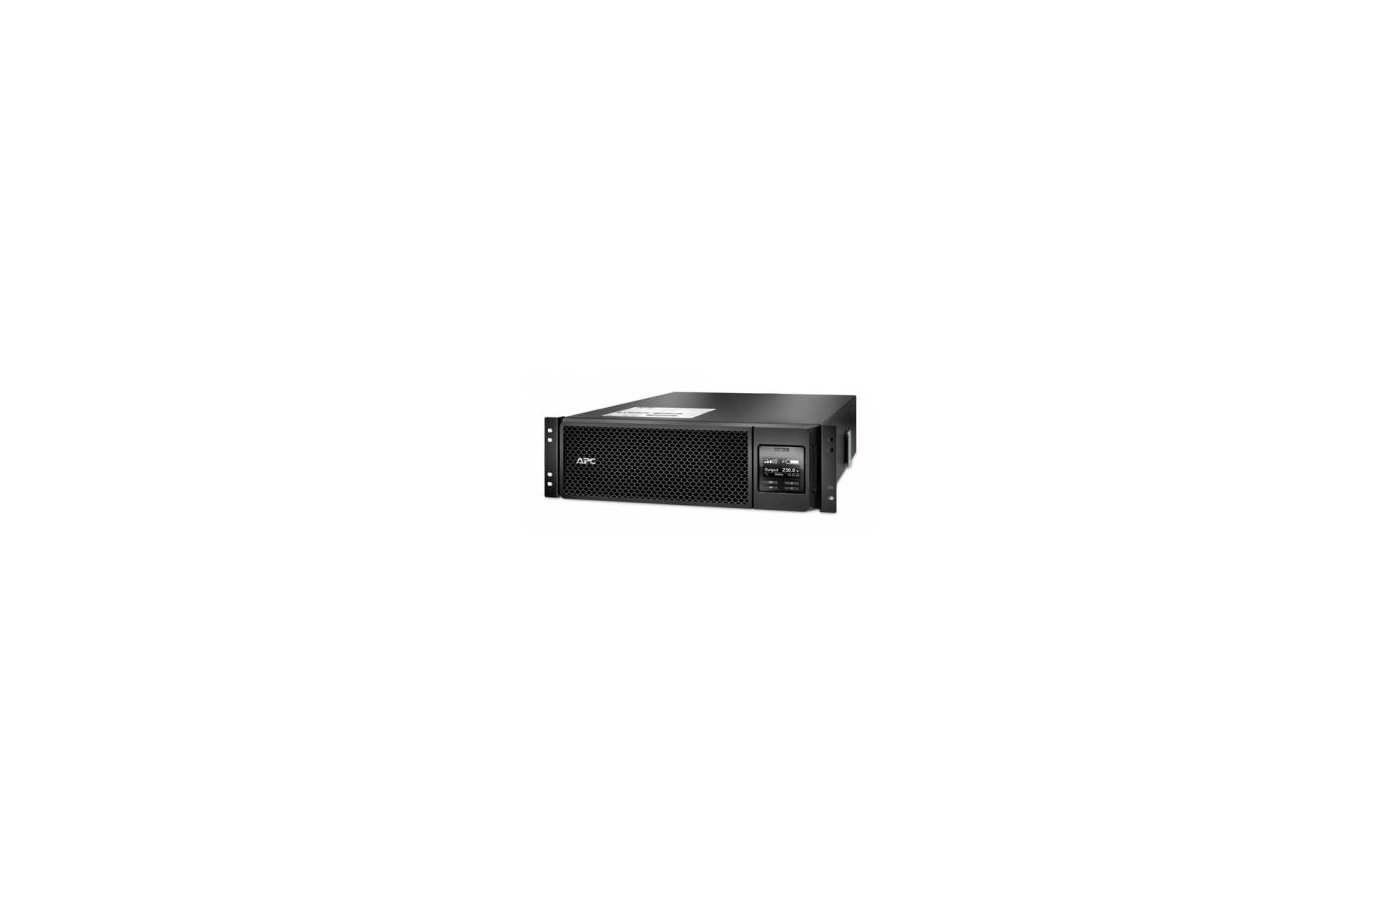 Блок питания APC Smart-UPS SRT SRT5KRMXLI 4500W черный Входной 230V /Выход 230V, Interface Port Contact Closure,